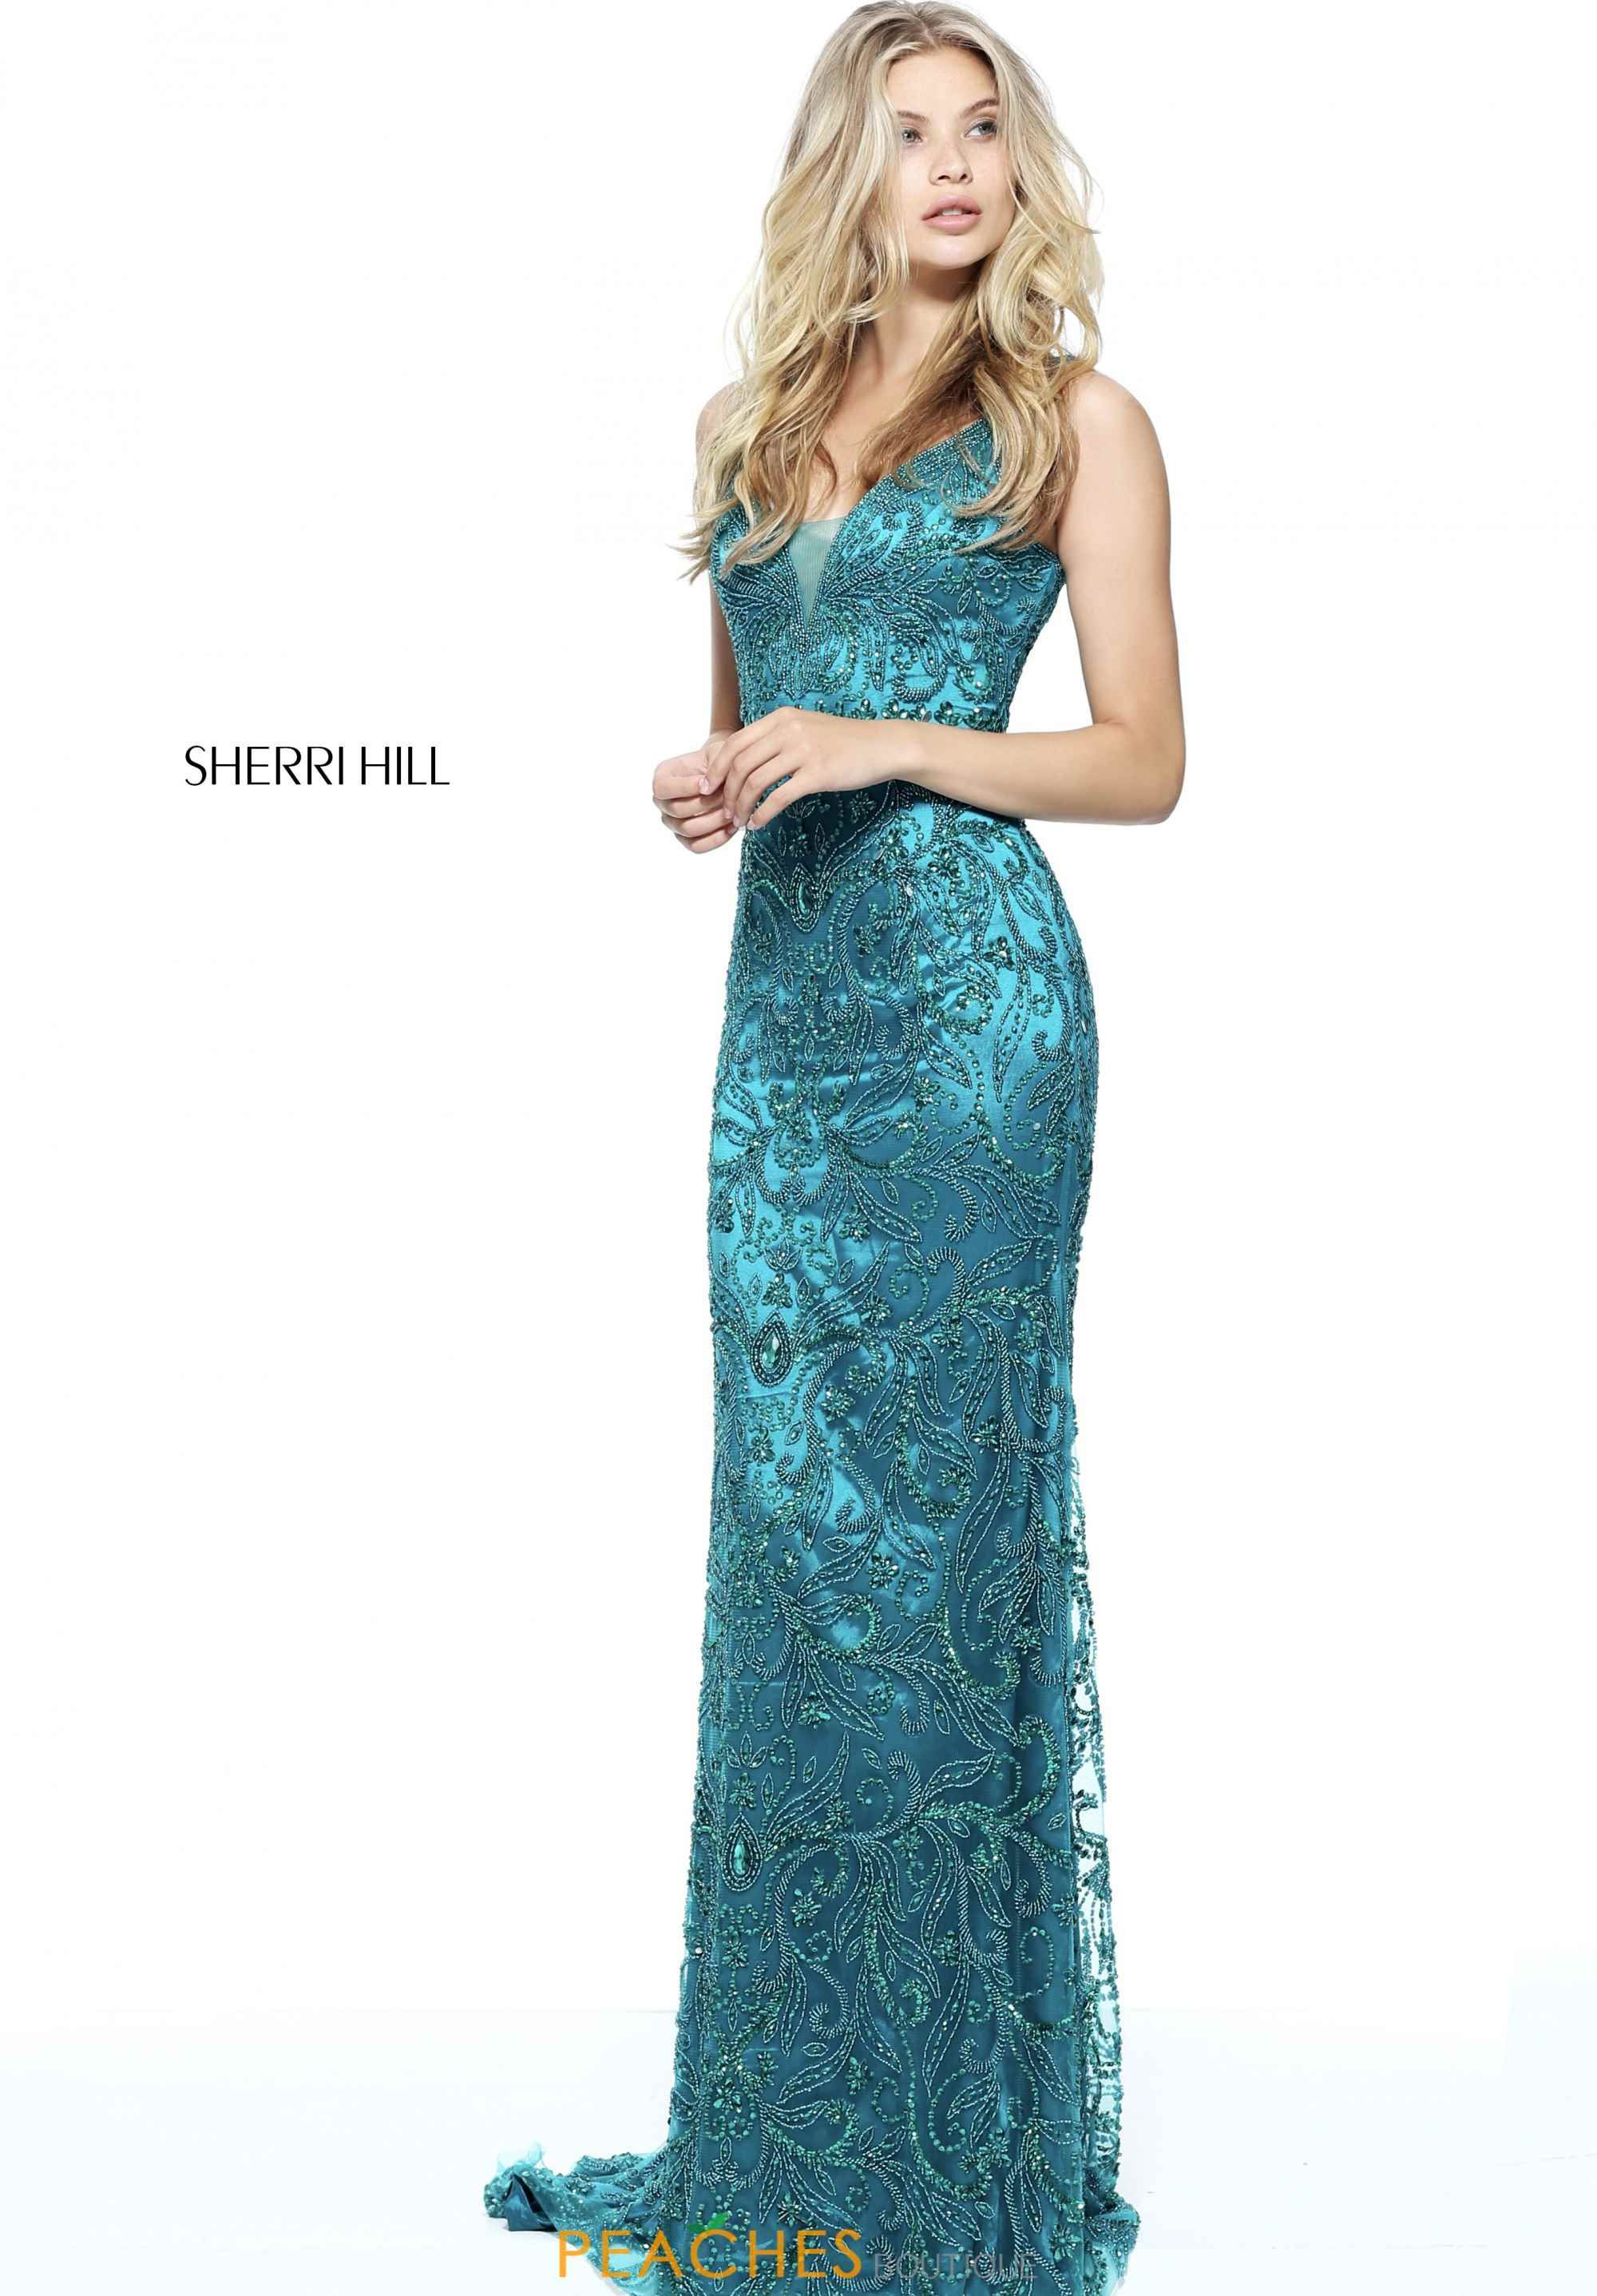 Pin by Renee Campbell on prom | Pinterest | Sherri hill prom dresses ...